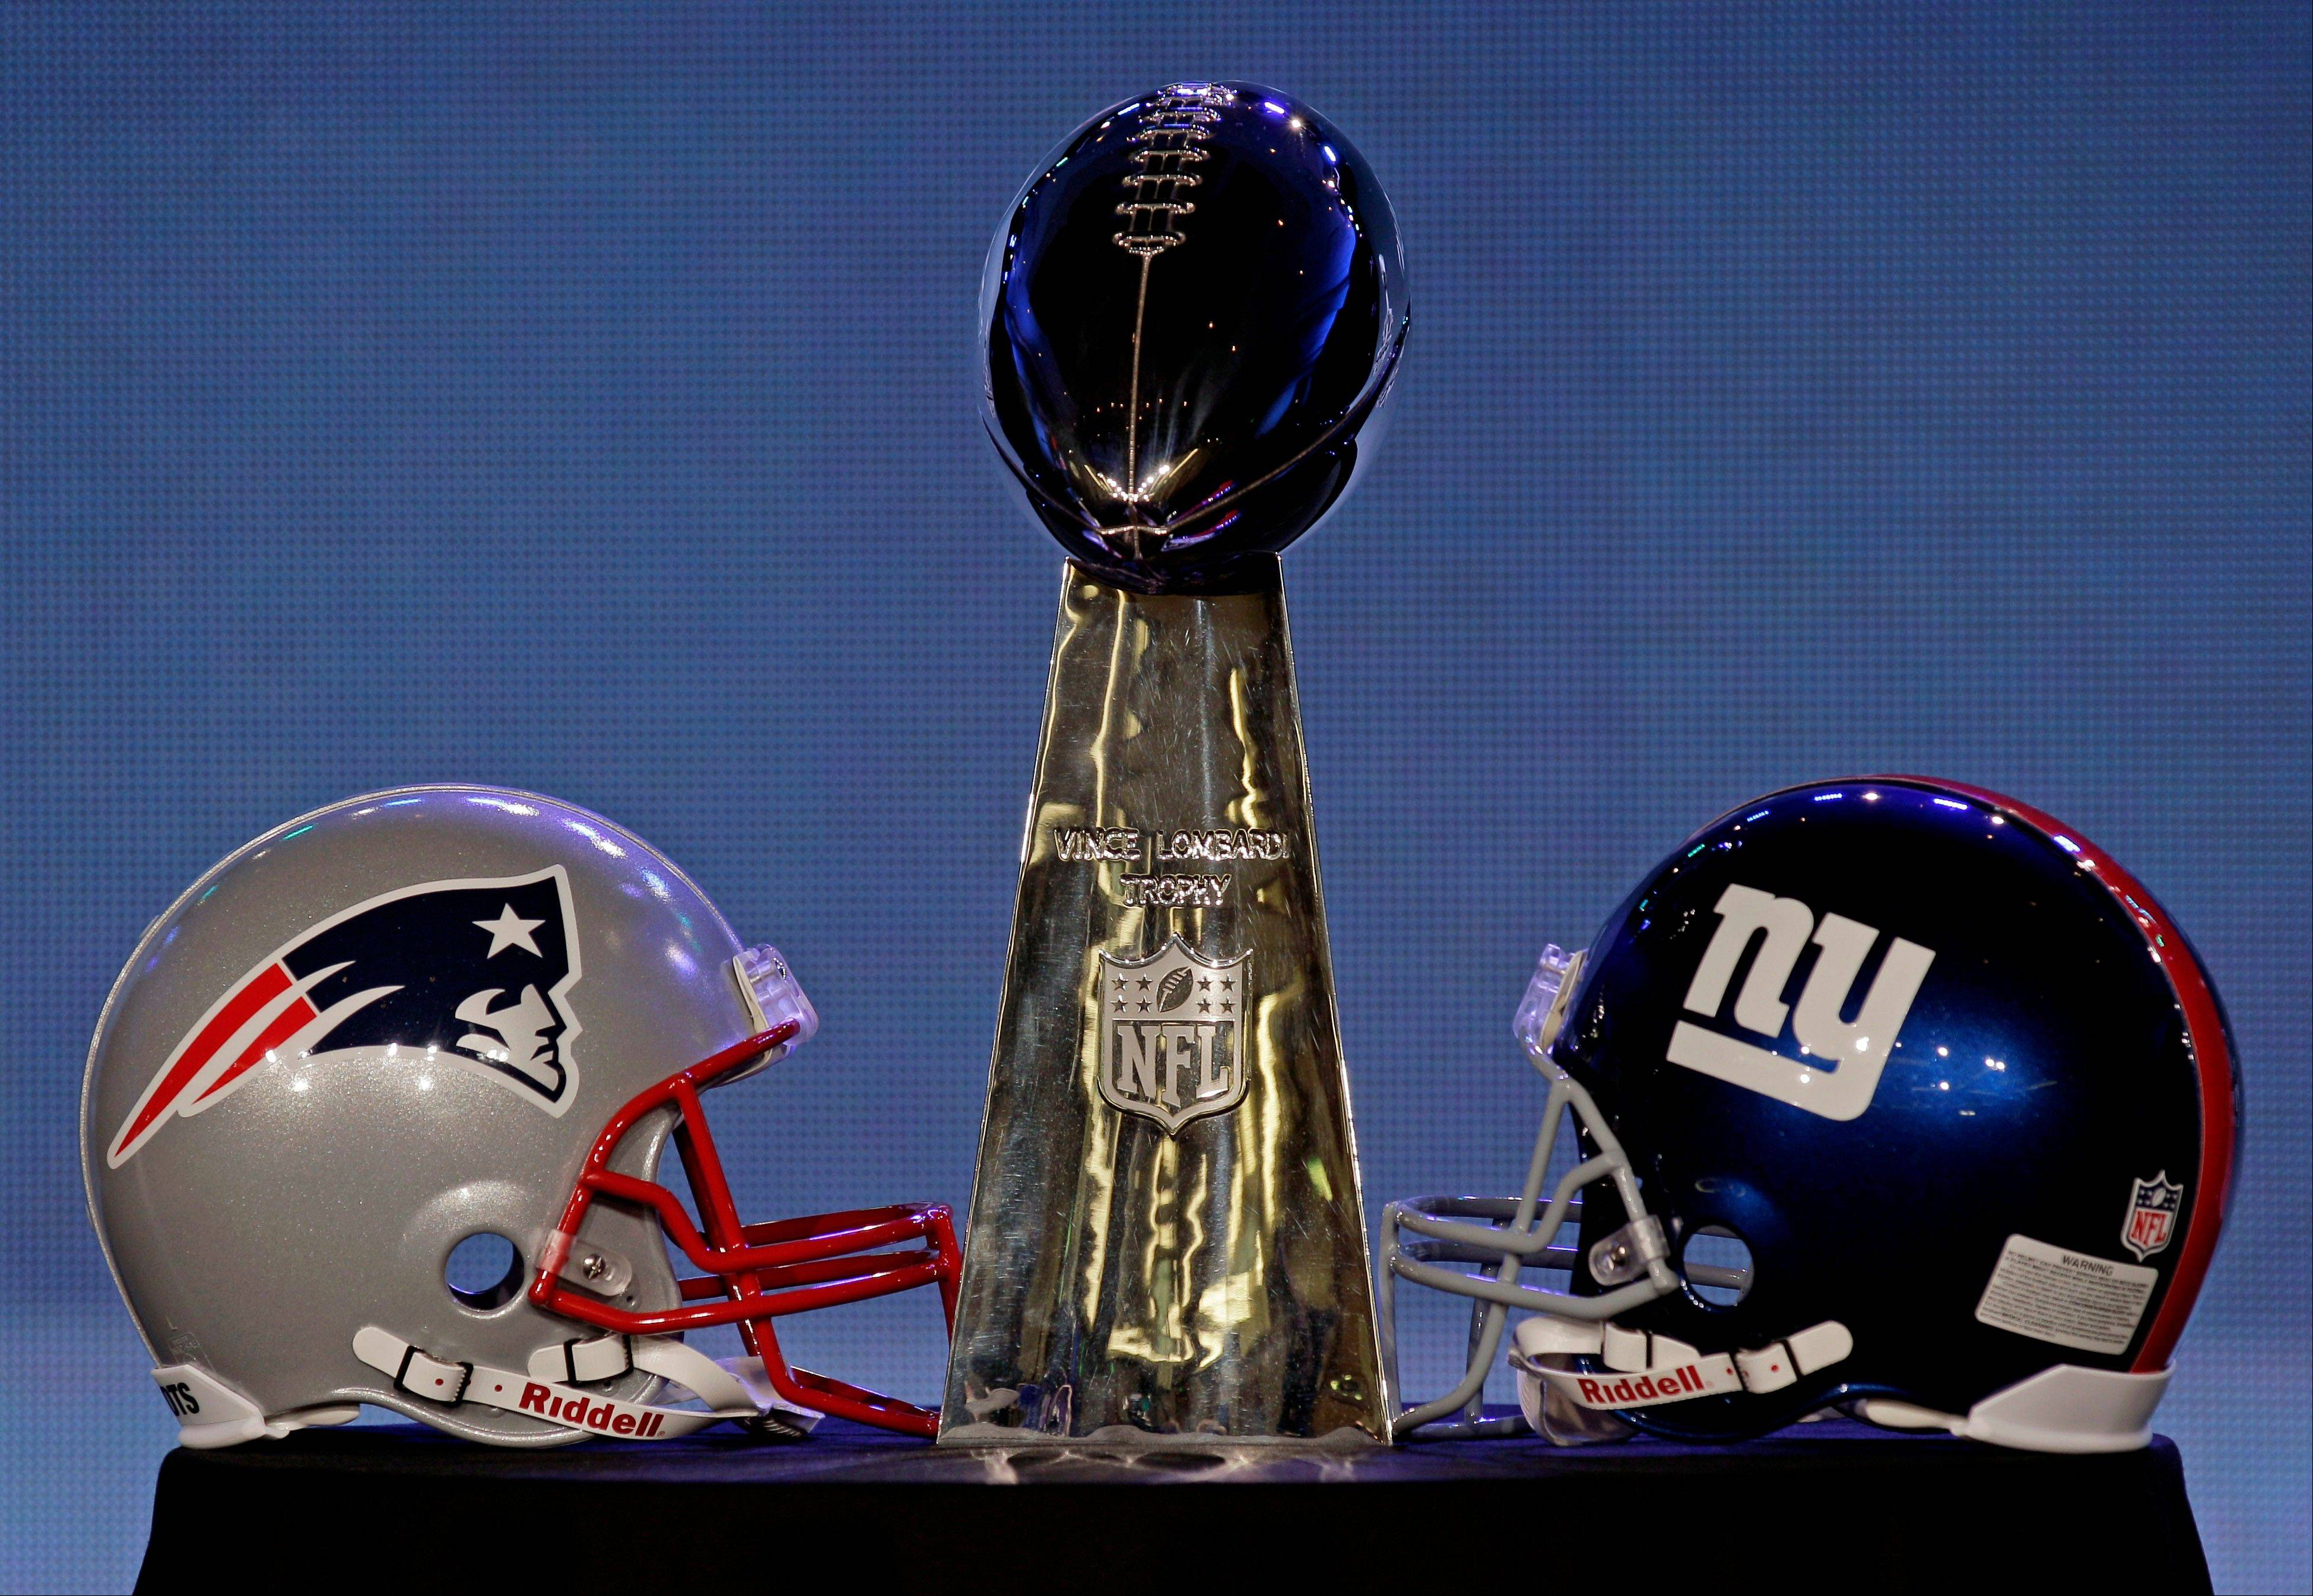 The New England Patriots and the New York Giants will battle for the Vince Lombardi Trophy in Indianapolis Sunday. Super Bowl XLVI kicks off about 5:30 p.m